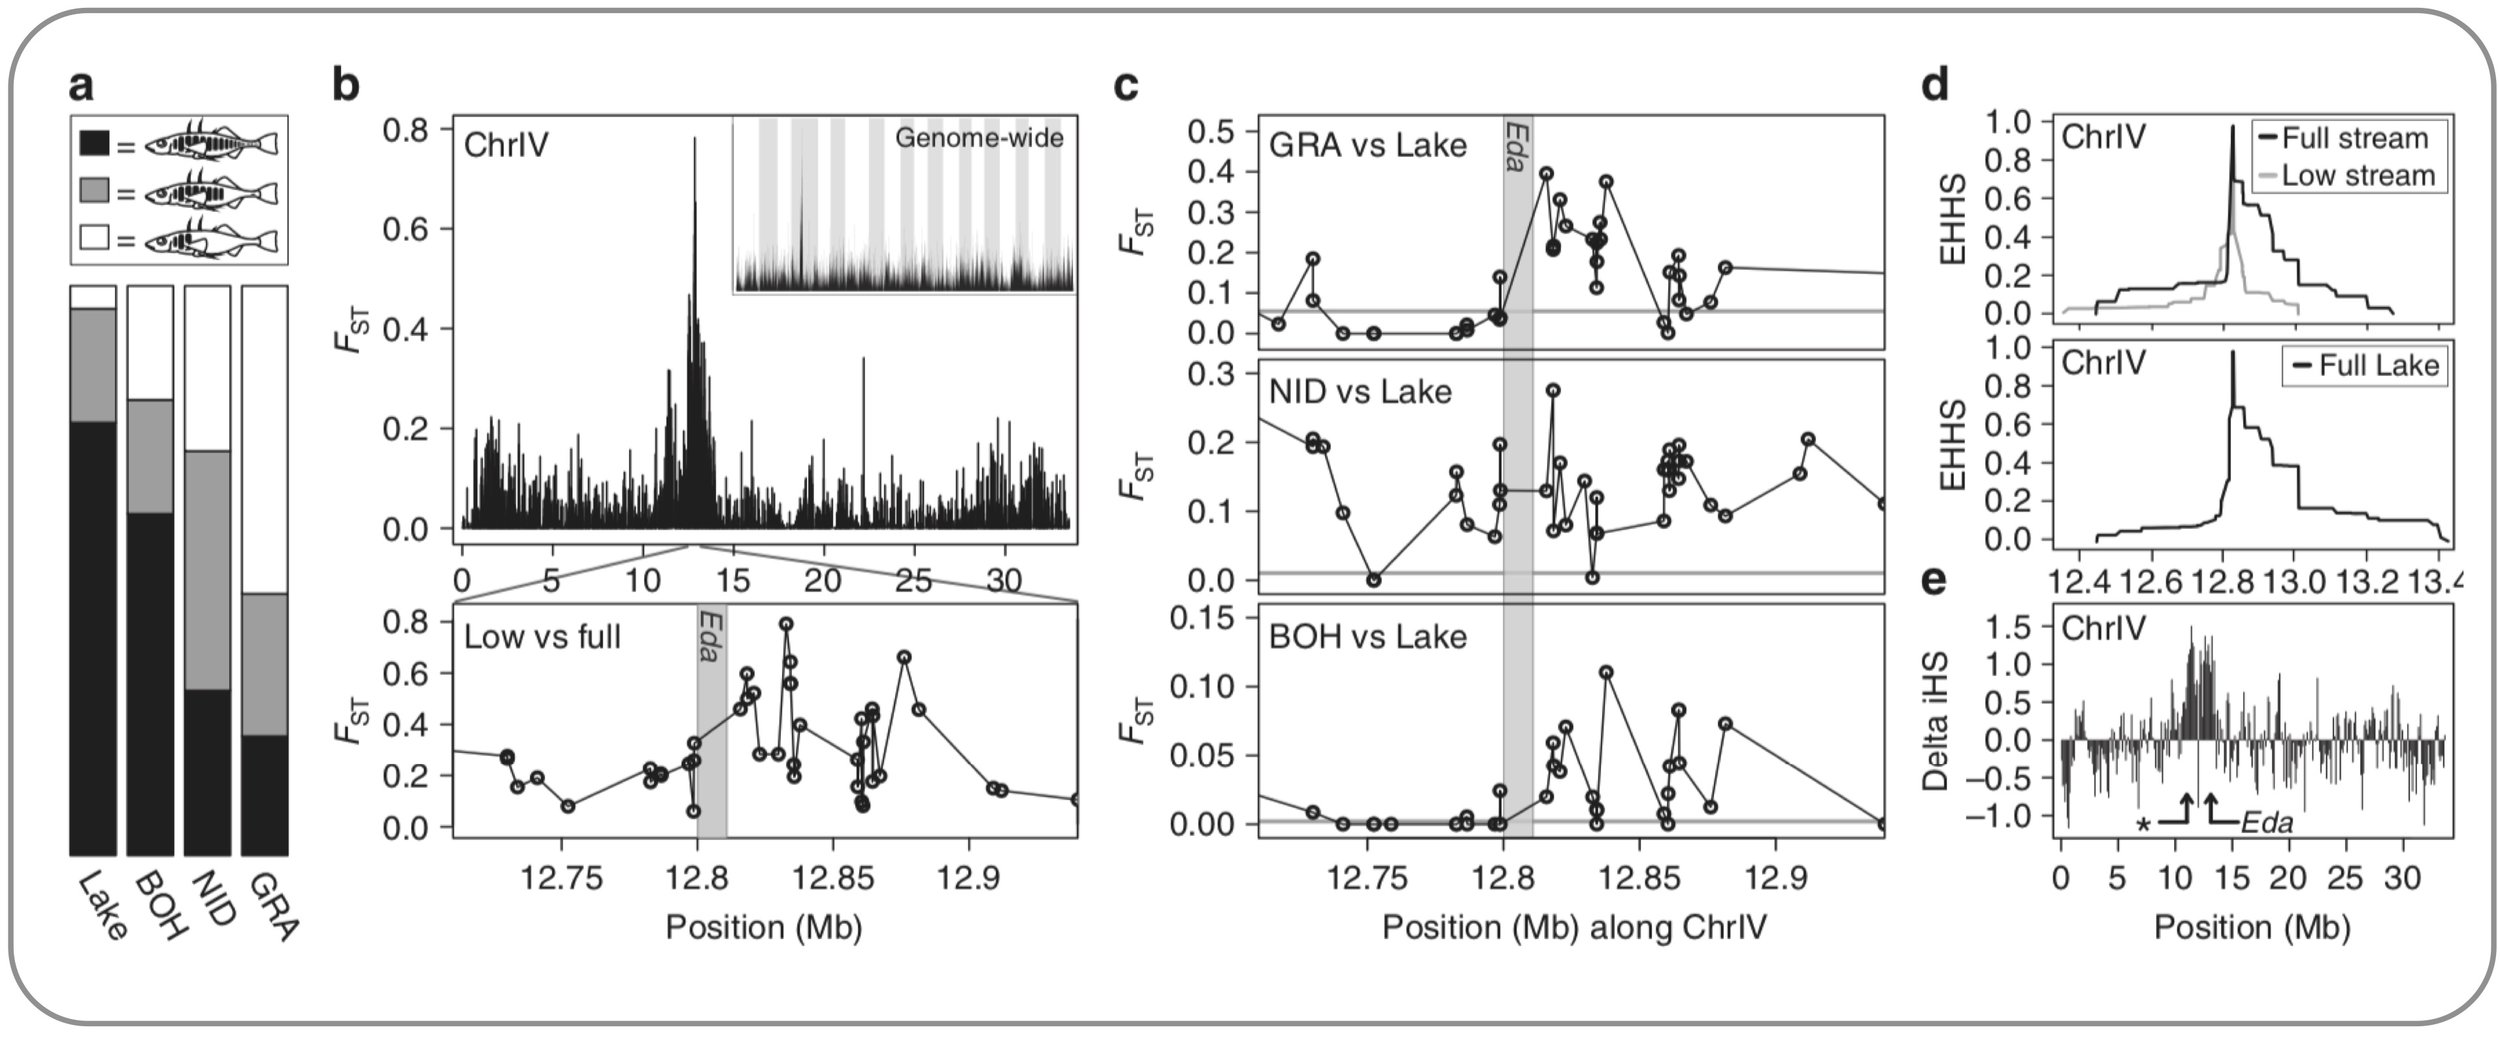 Lake-stream divergence of stickleback in lateral plating and the associated  molecular signatures   (   Roesti et al. 2015   ) .